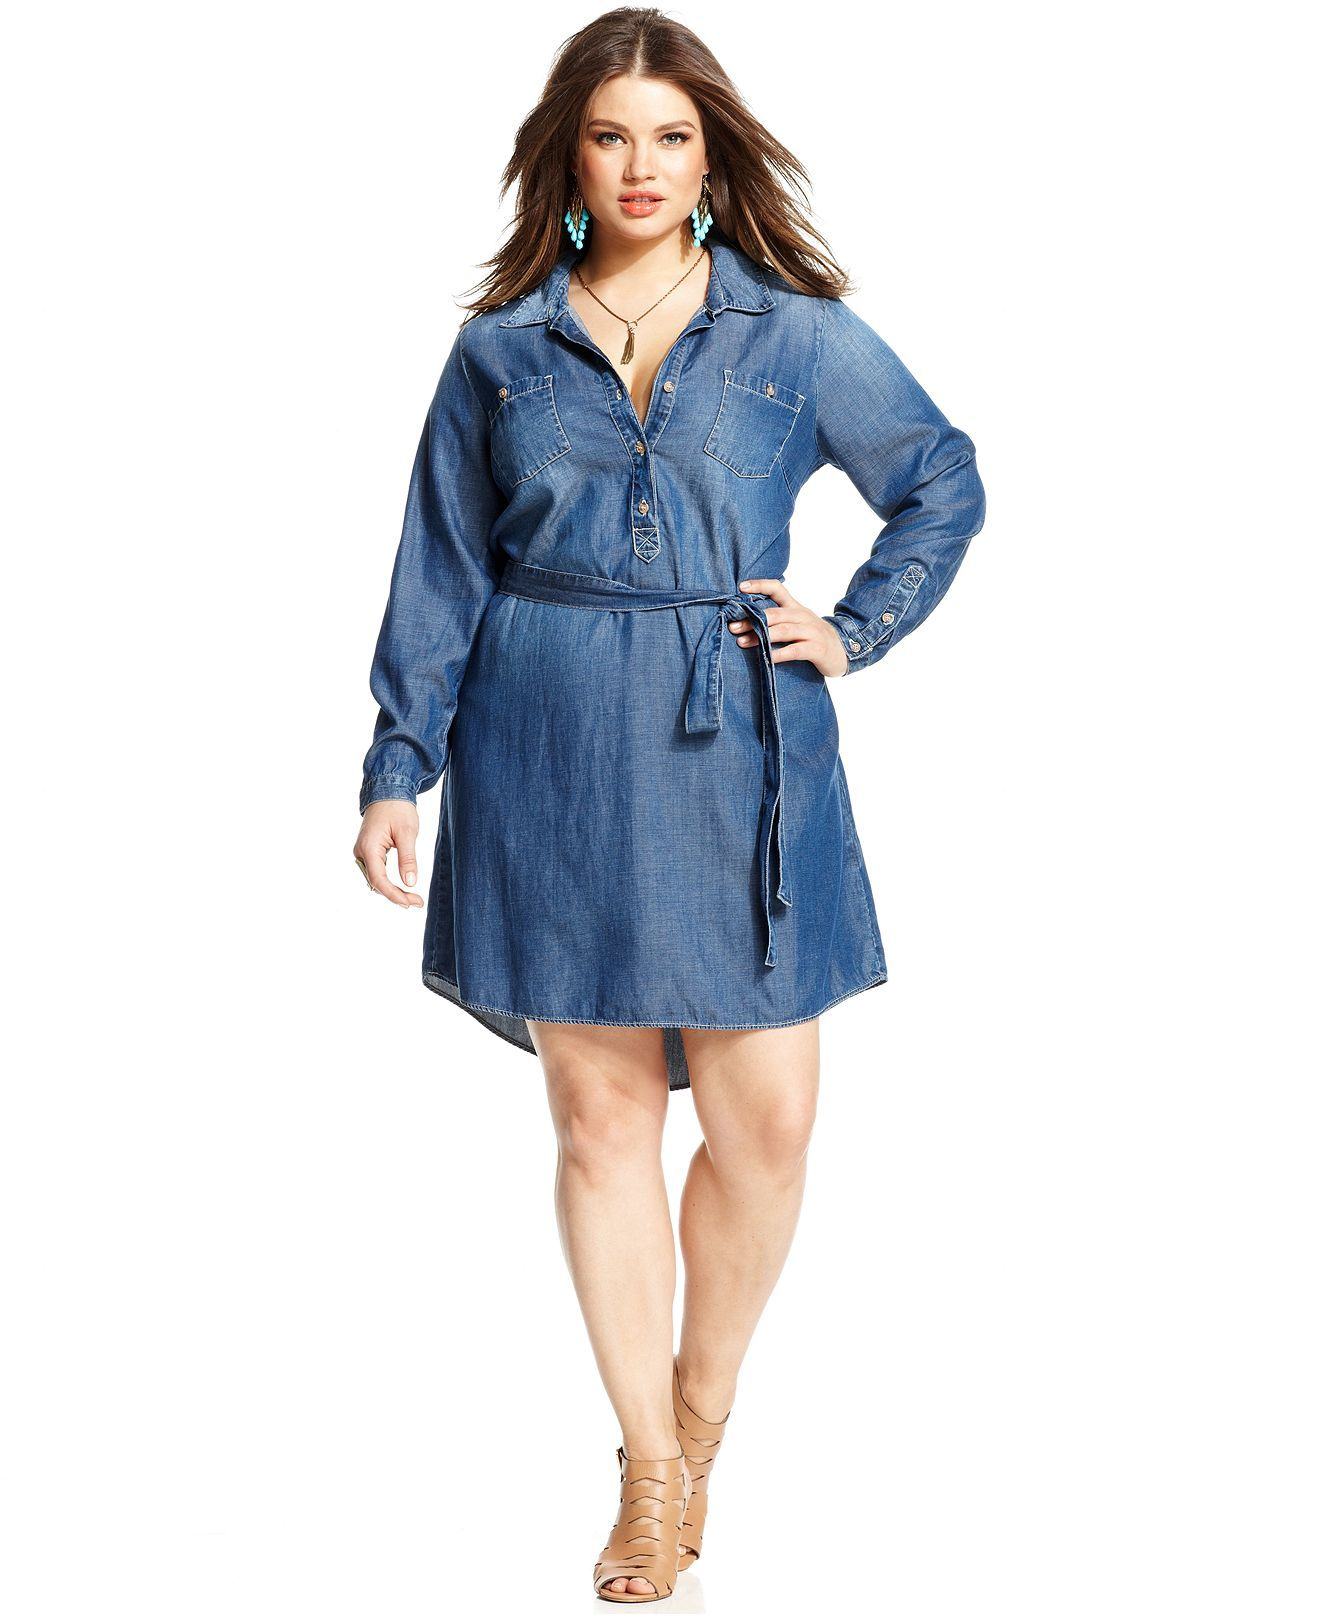 plus size blue jean dress | best dress ideas | pinterest | blue